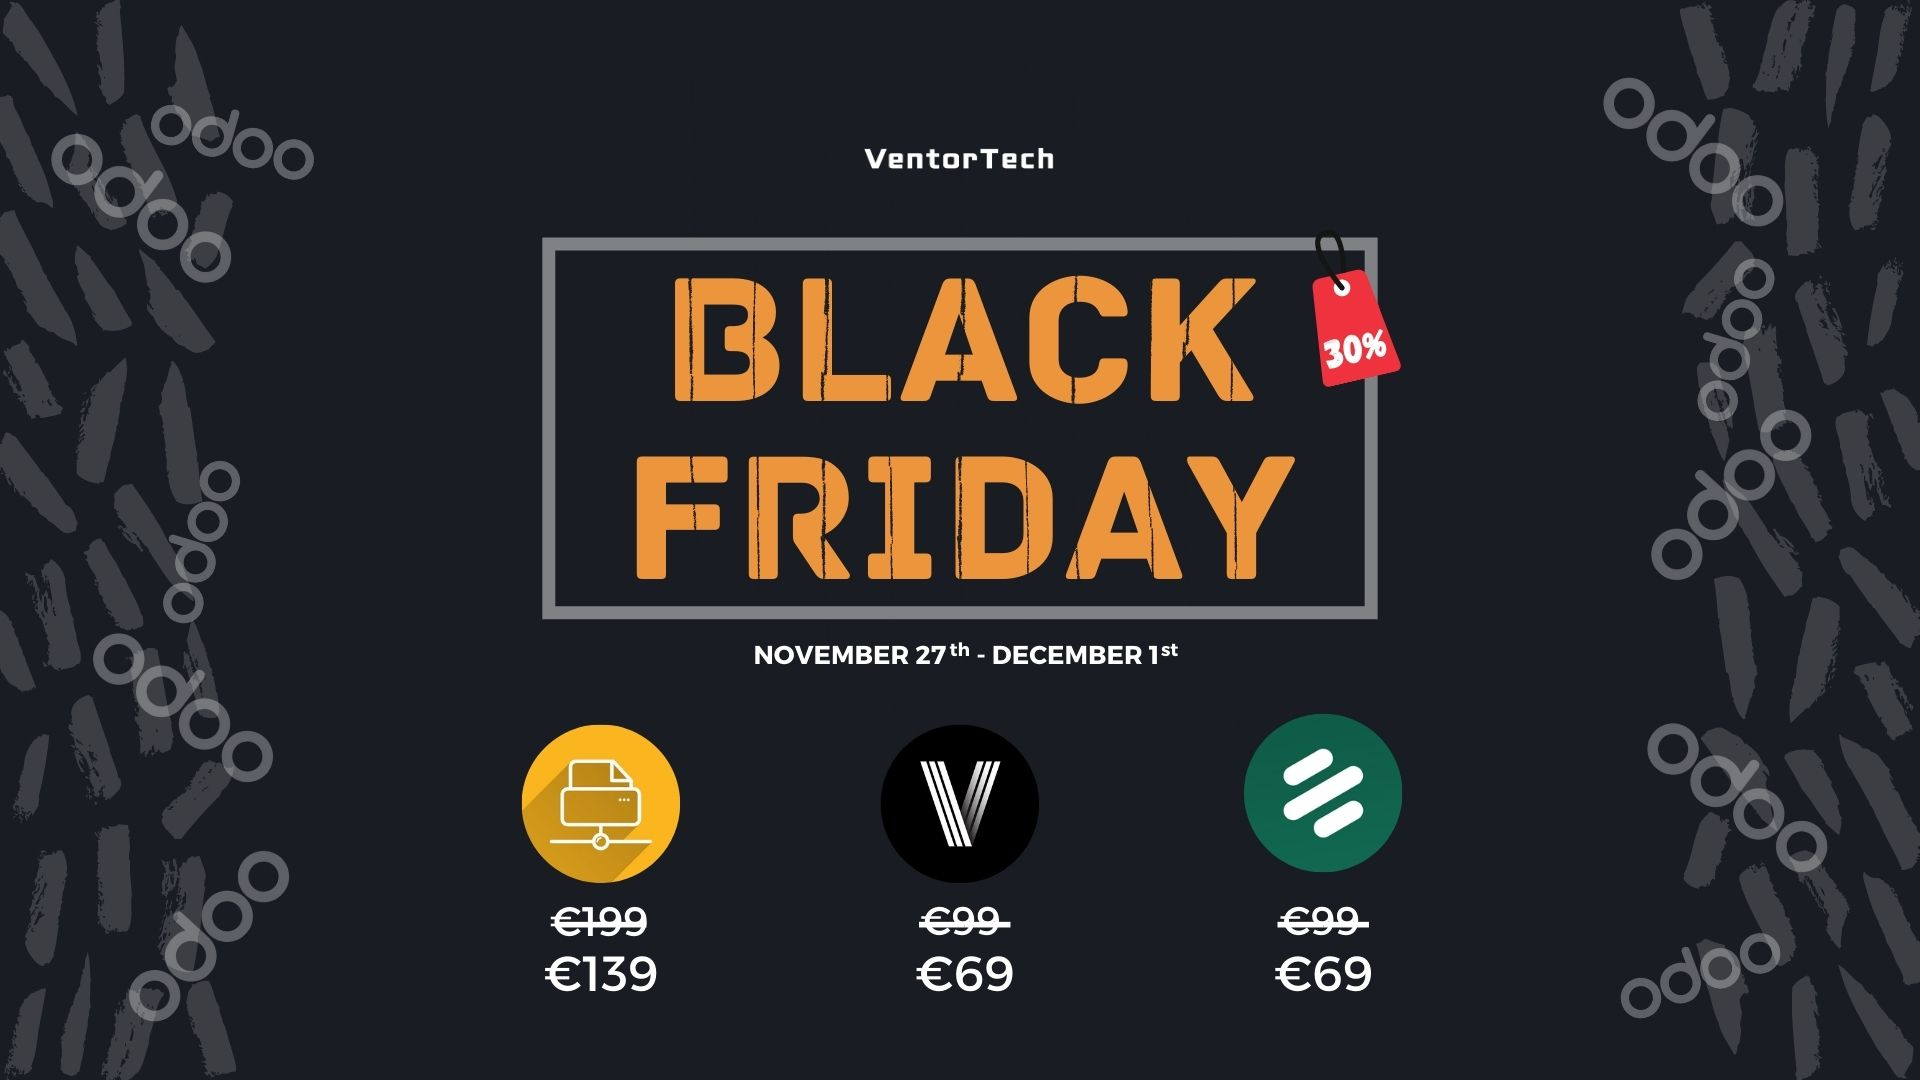 Black Friday – Get 30% off of Ventor